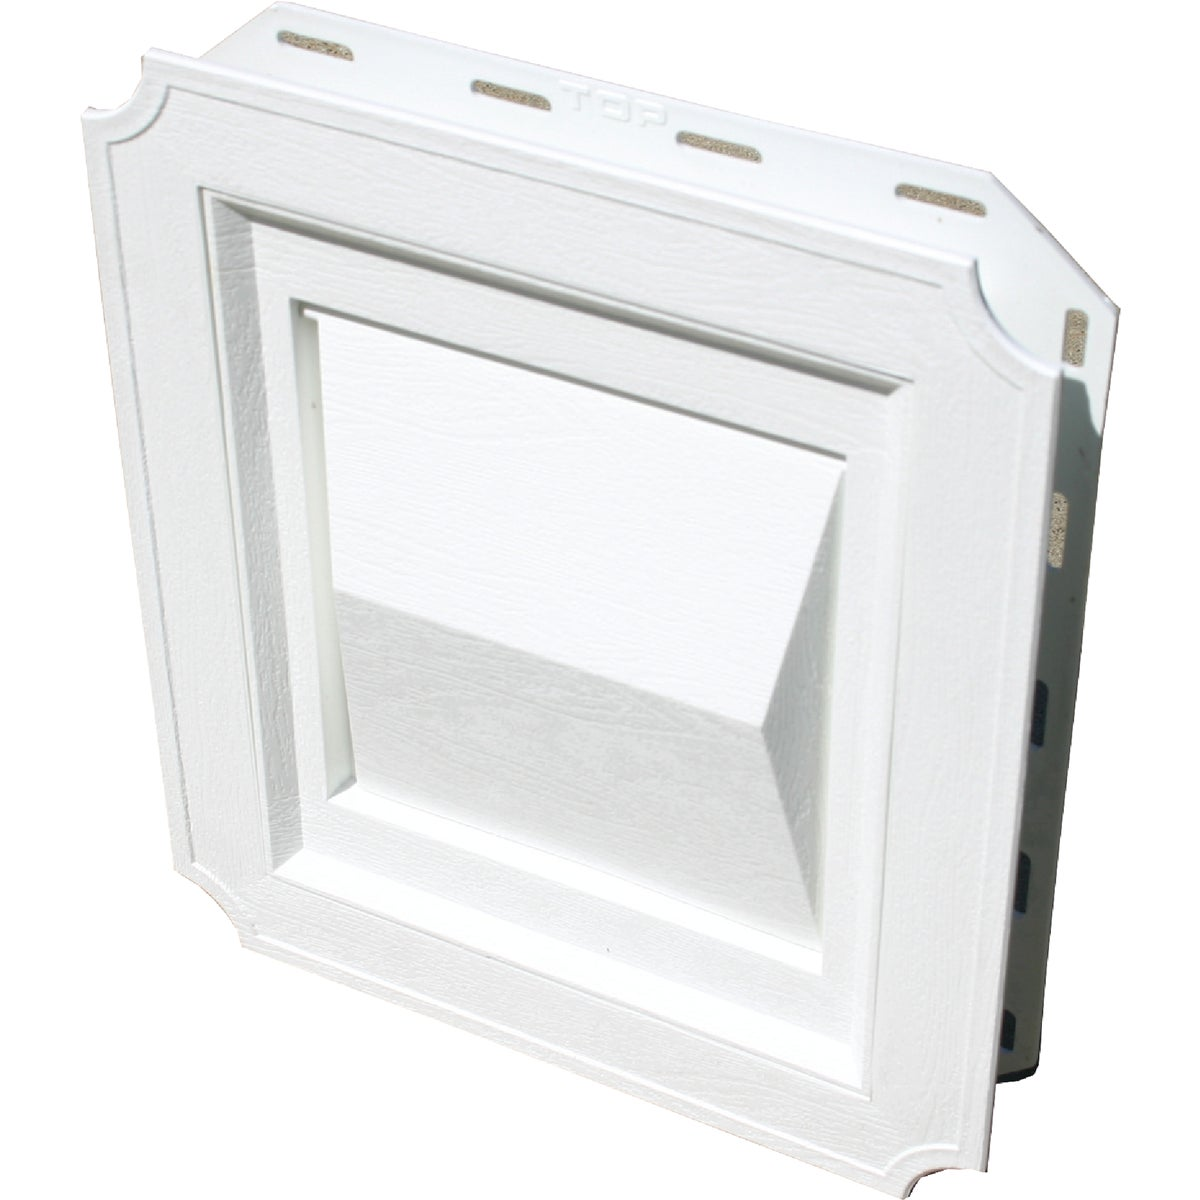 WHITE J-BLOCK VENT HOOD - 011716 by Builders Best